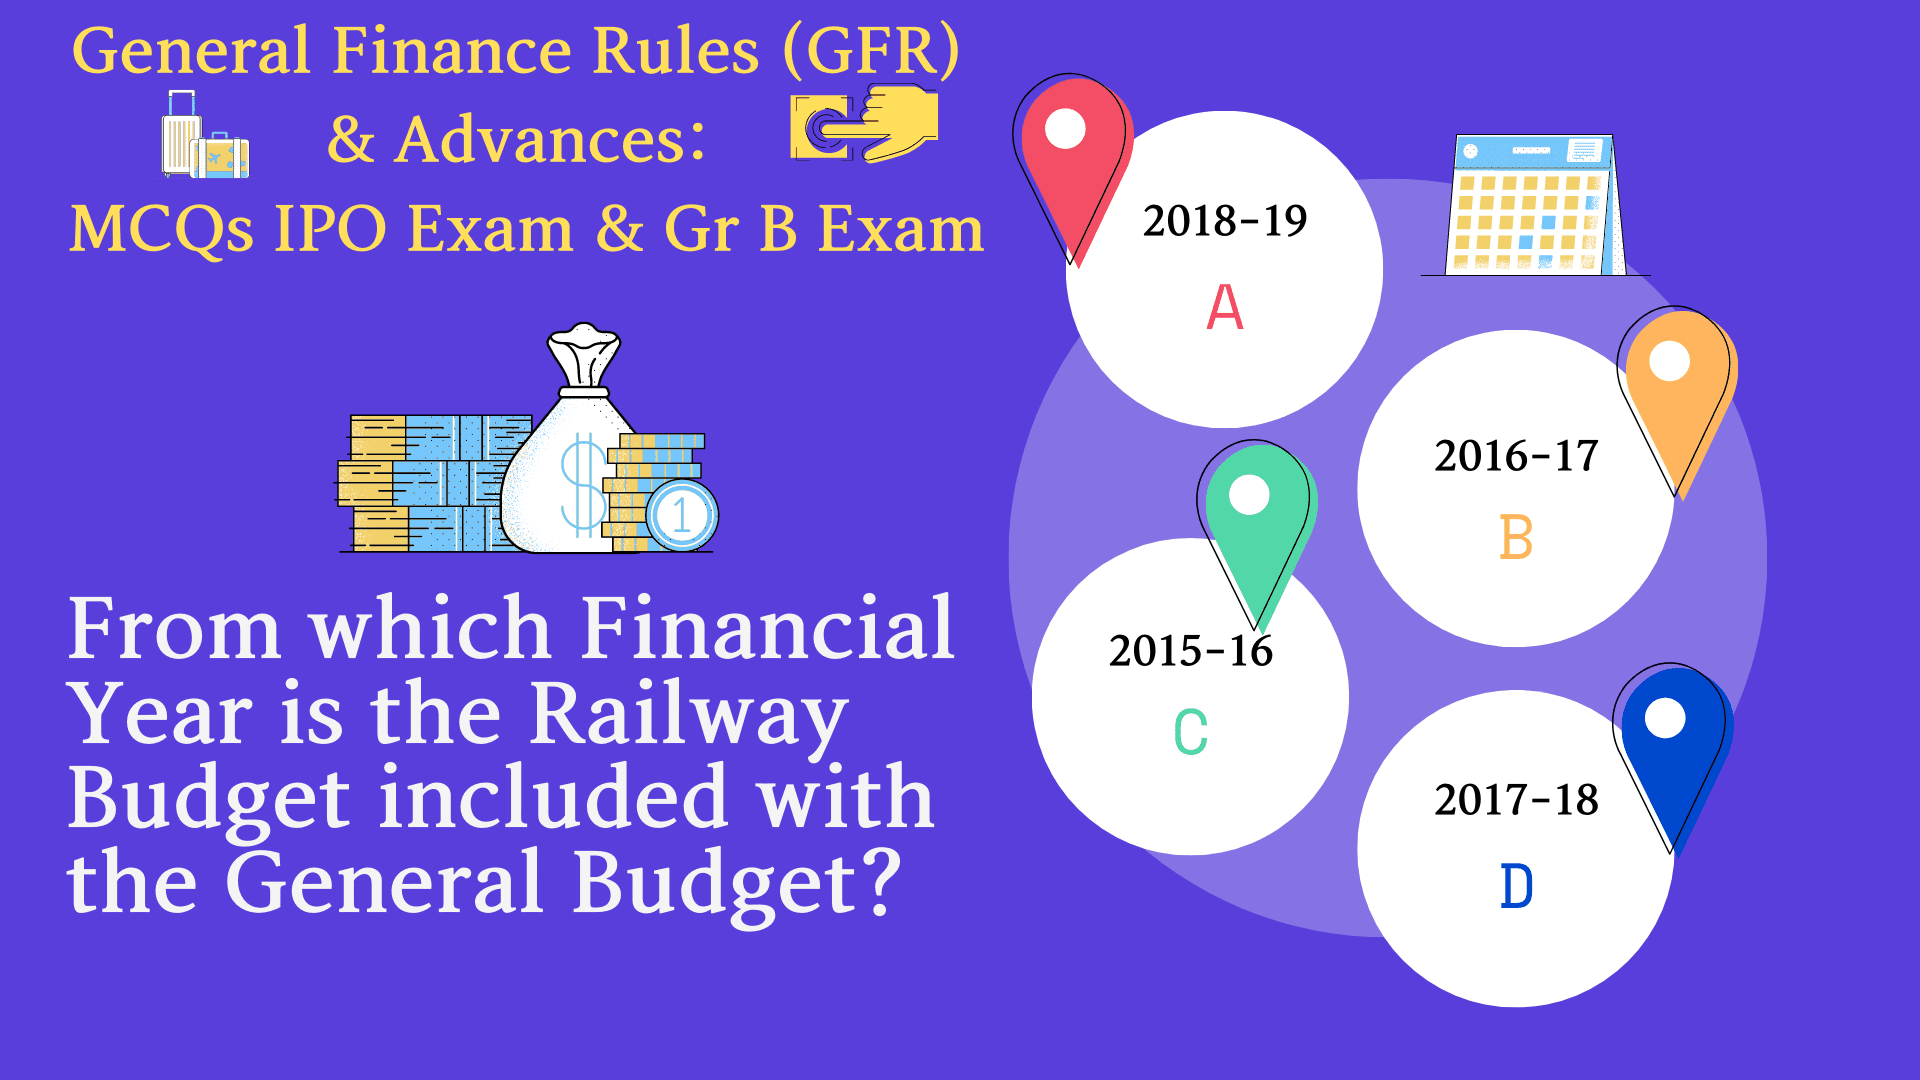 General Finance Rules